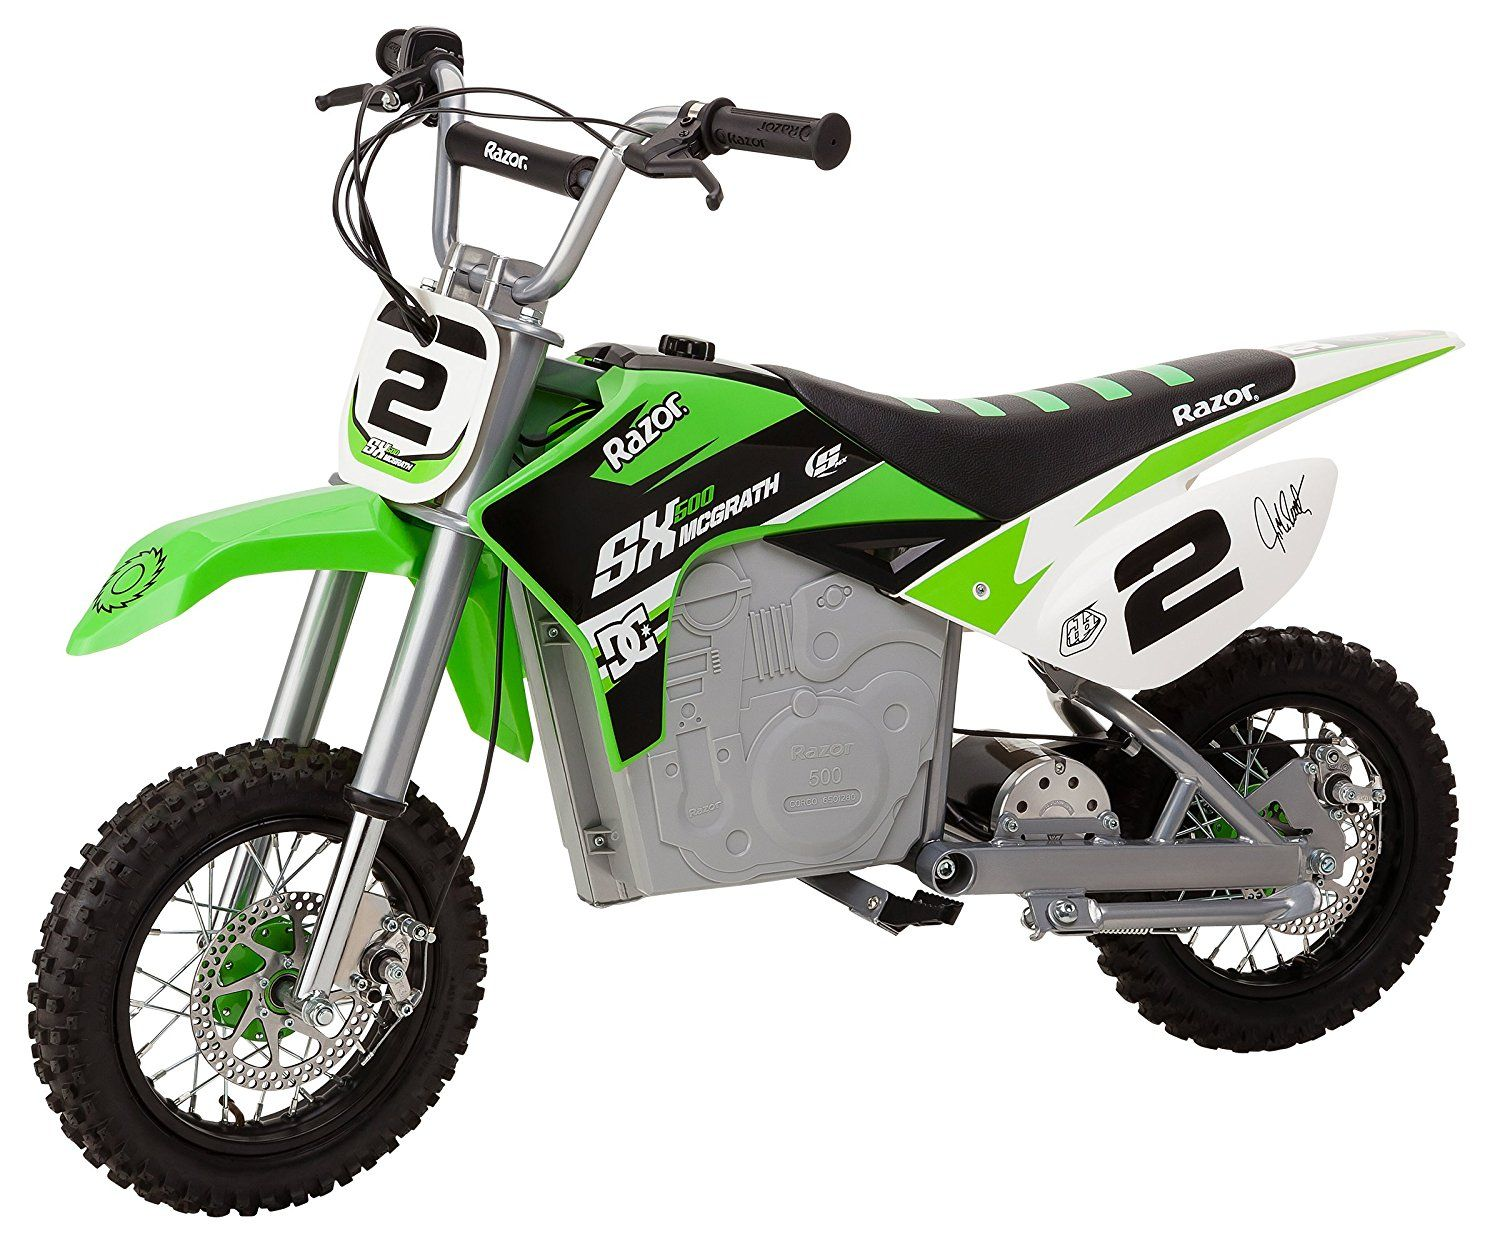 Check Out The All New Green Razor Sx500 Mcgrath Electric Dirt Bike See What Jeremy Mcgrath Himse Electric Dirt Bike Electric Bike For Kids Dirt Bikes For Kids